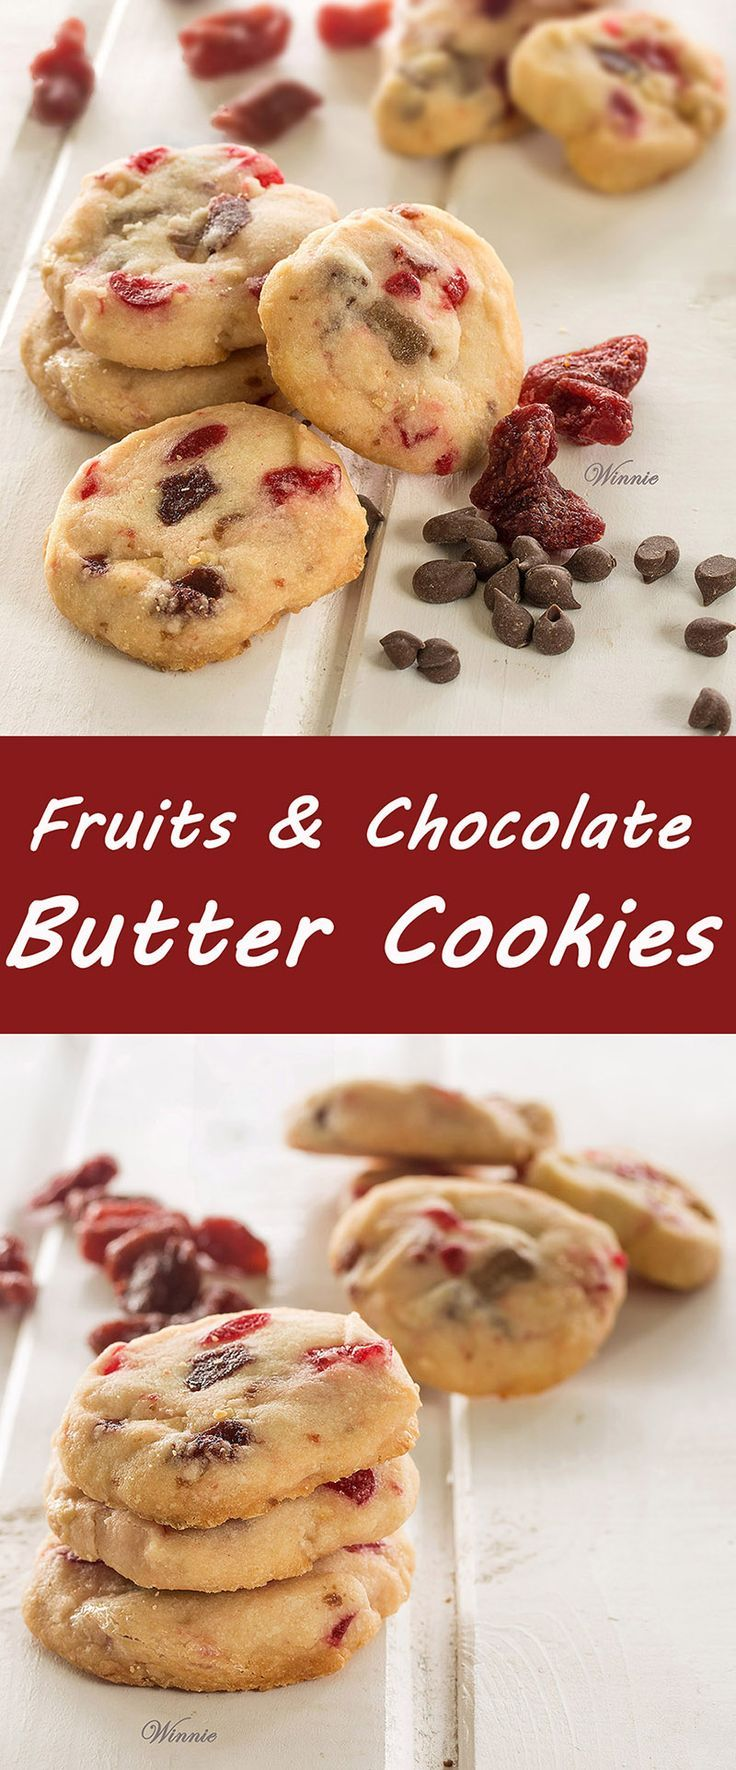 Big White Chocolate Almond And Cranberry Cookies Recipe Cranberry Cookies Cranberry Cookies Recipes Holiday Cookie Recipes